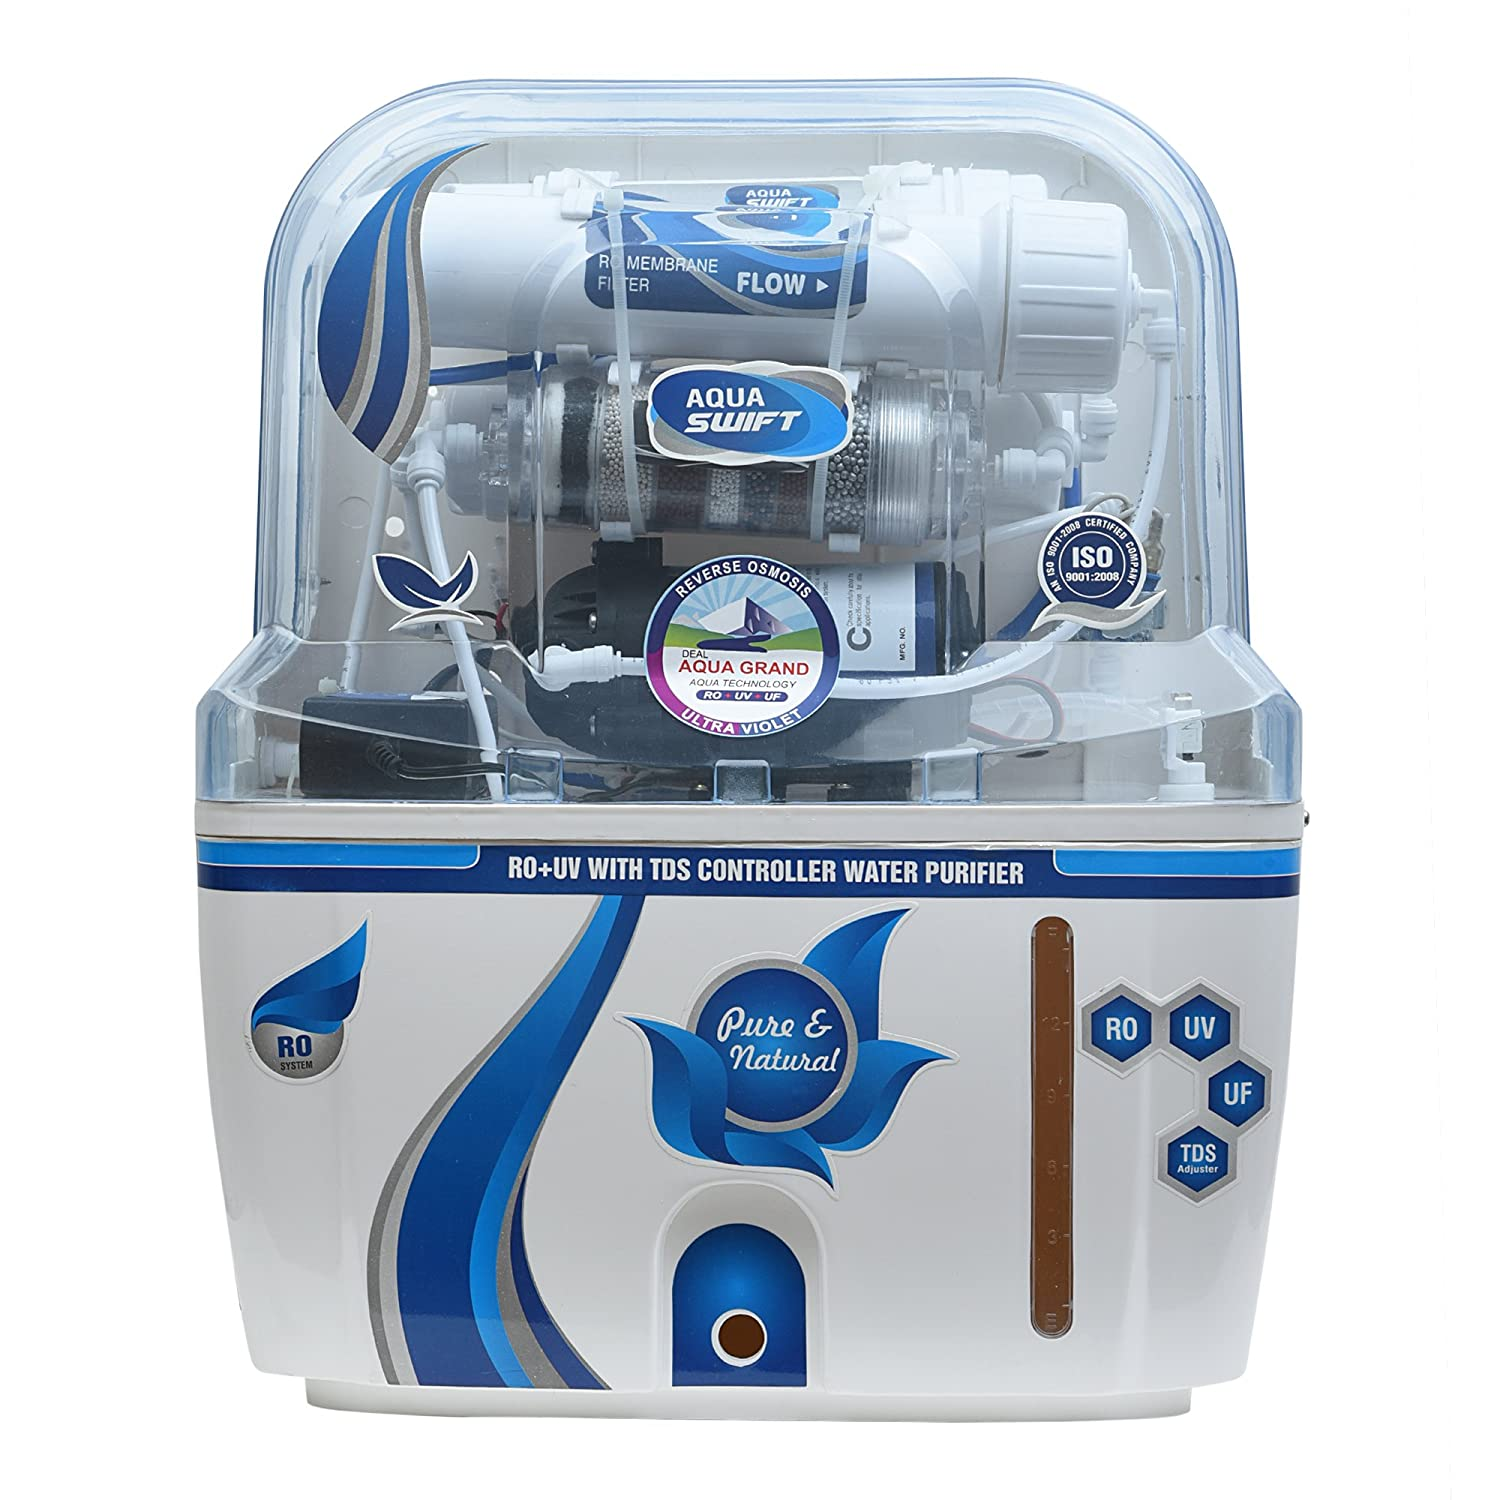 af360f3a2 Deal Aquagrand Aqua Swift RO Water Purifier UF UV MINERAL TDS Controller  with Alkaline Technology